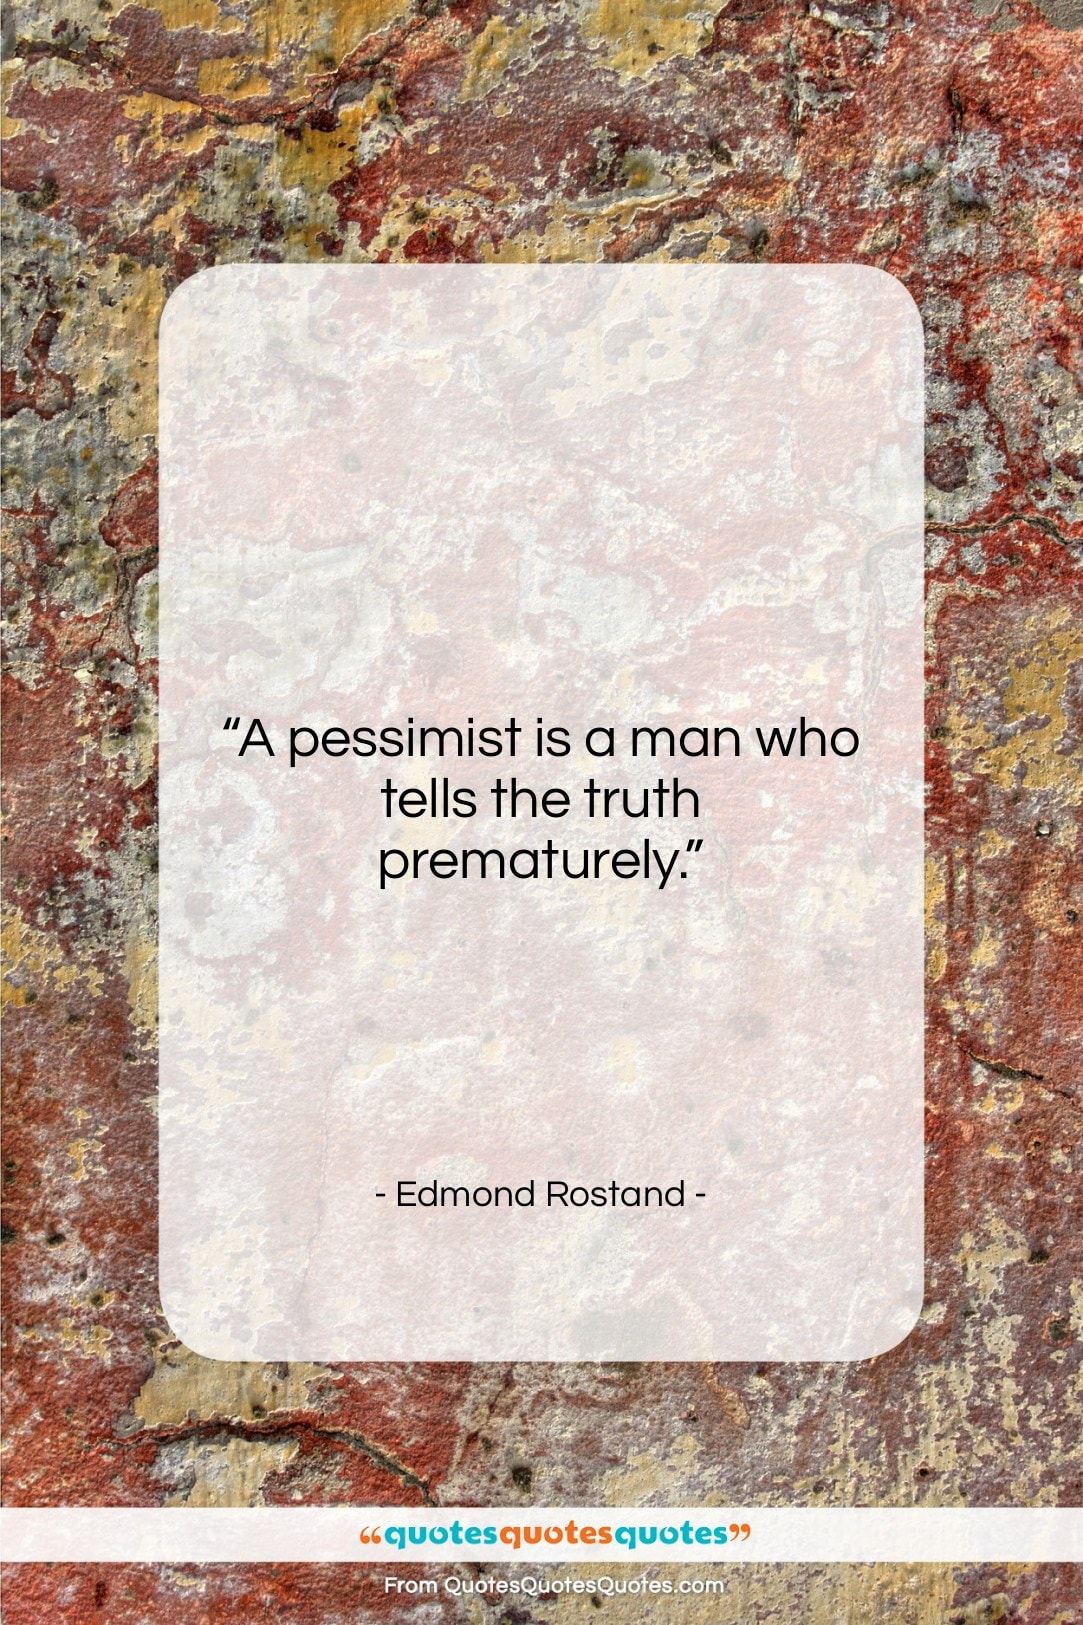 """Edmond Rostand quote: """"A pessimist is a man who tells…""""- at QuotesQuotesQuotes.com"""